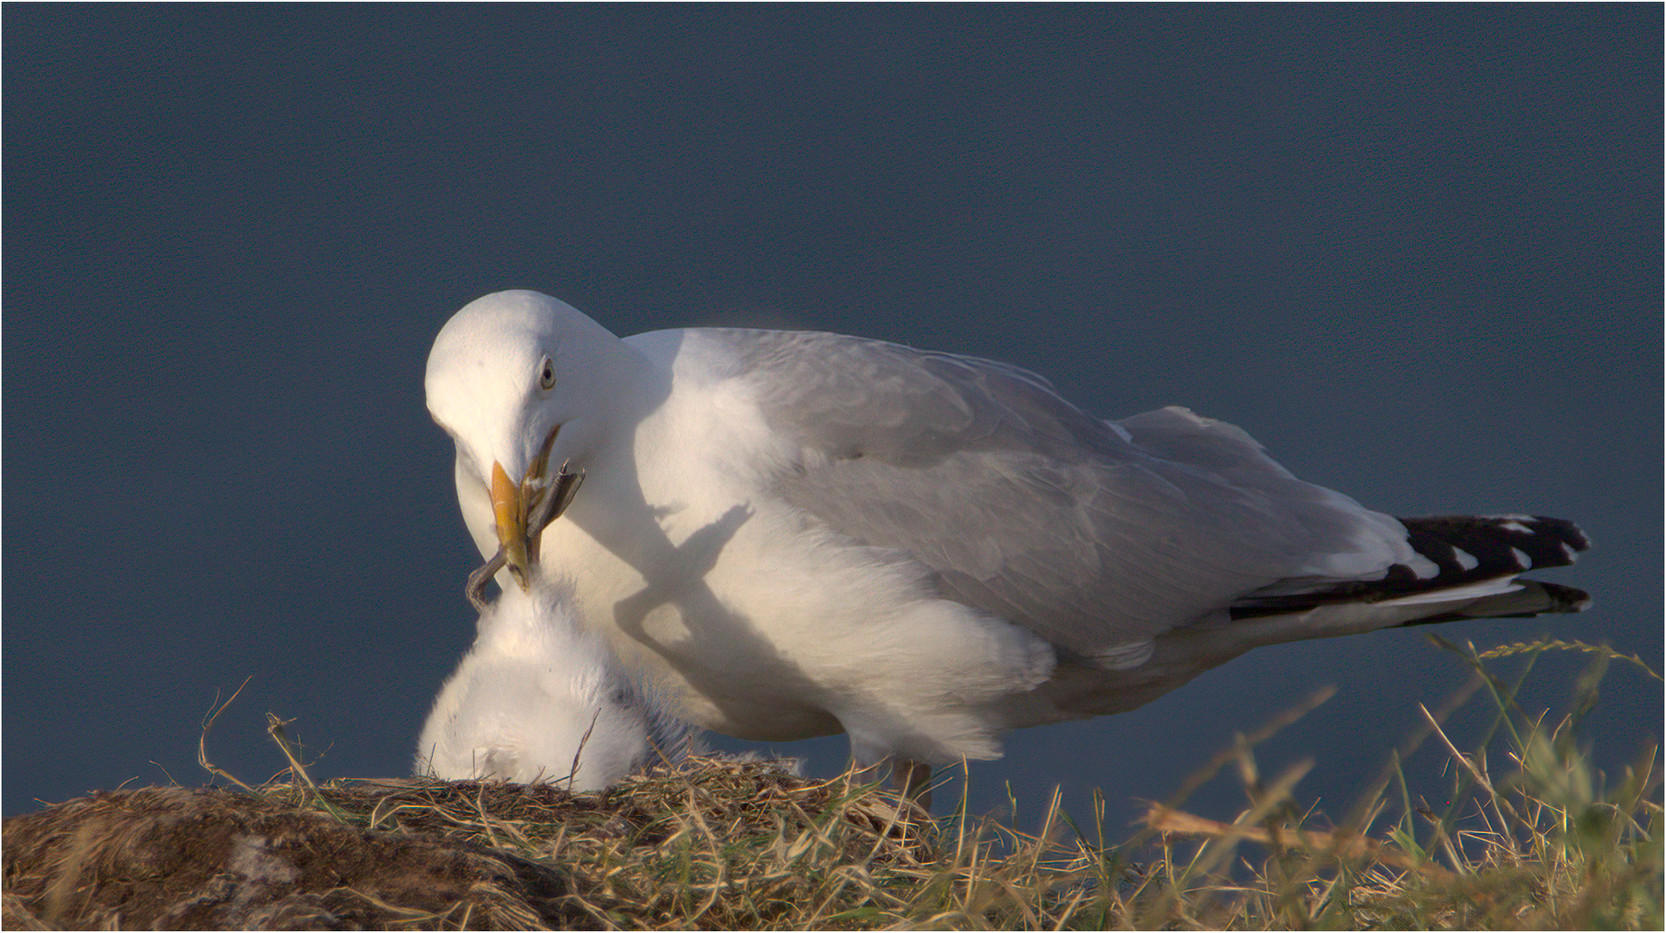 17 GULL WITH GANNET CHICK PREY by Colin Burgess